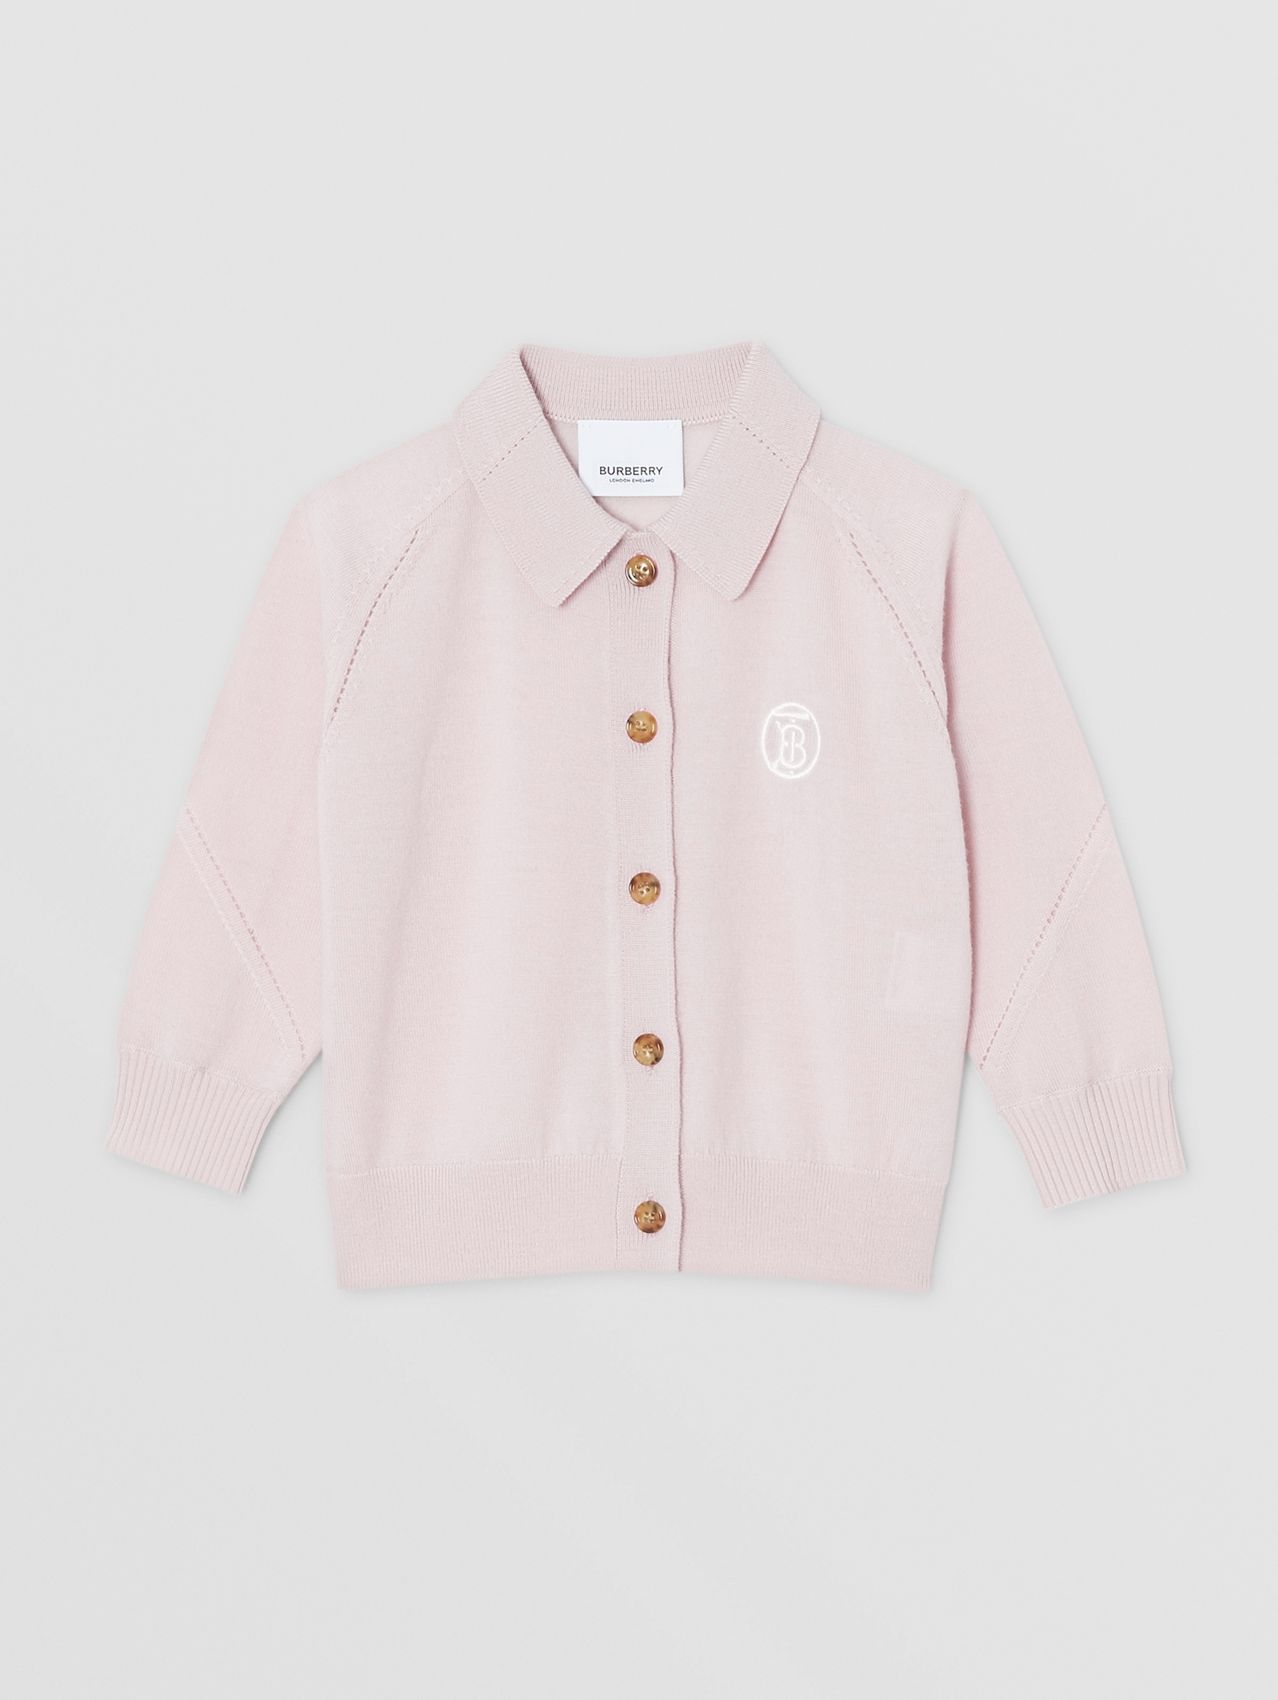 Monogram Motif Merino Wool Cardigan in Light Pink